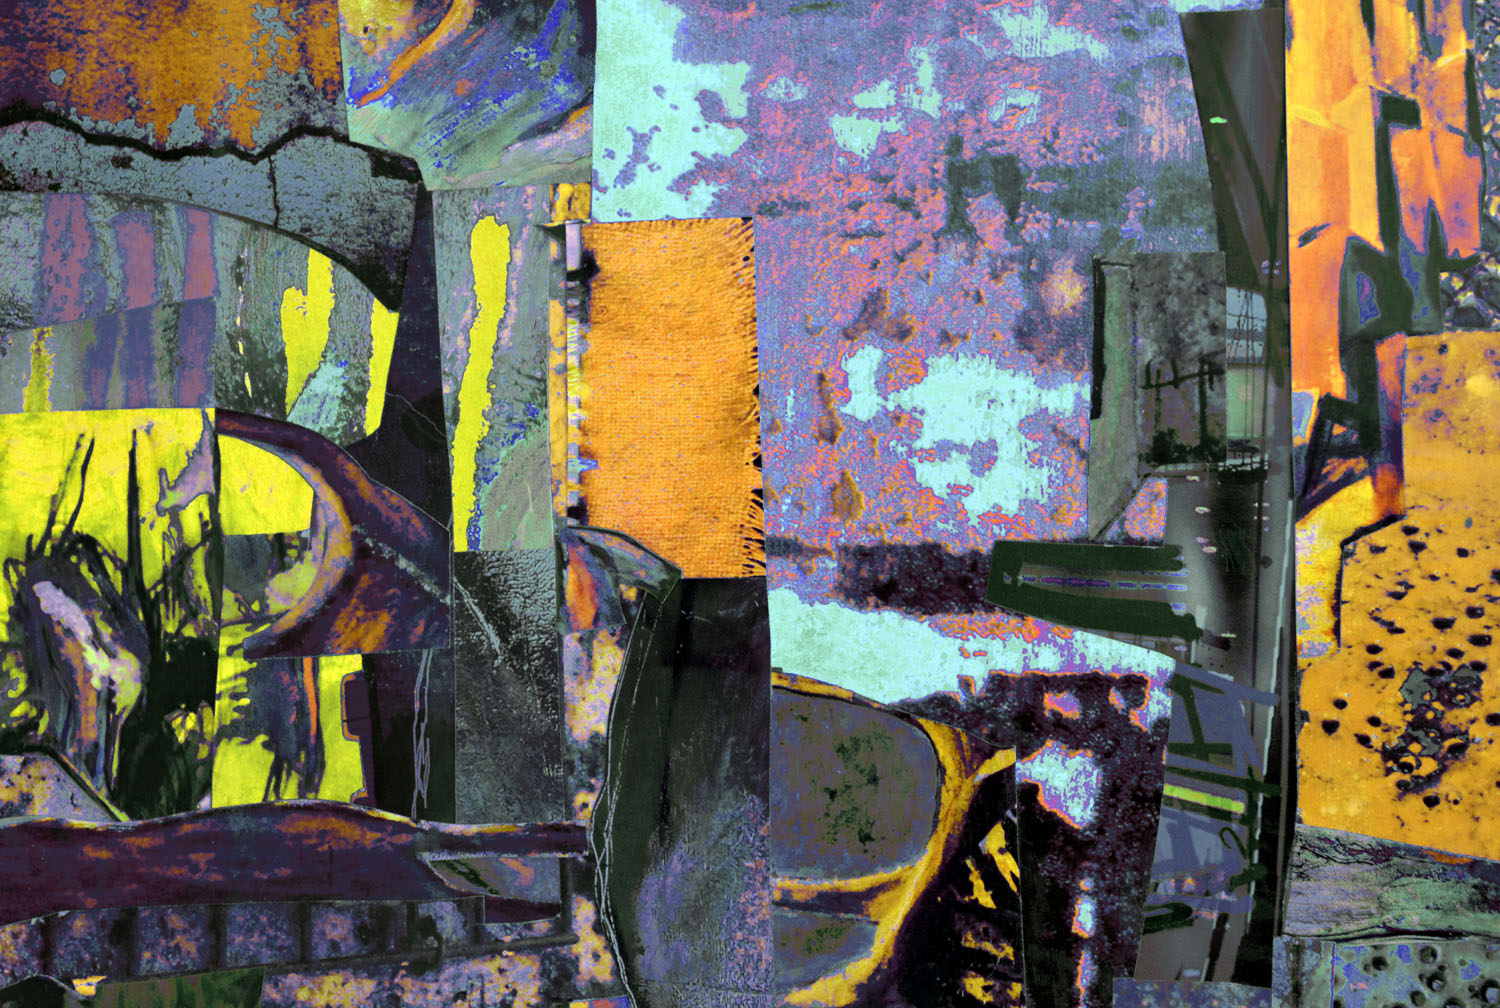 2moons E-bold-vivid-colorful-abstract-collage-art-by-judi-magier.jpg